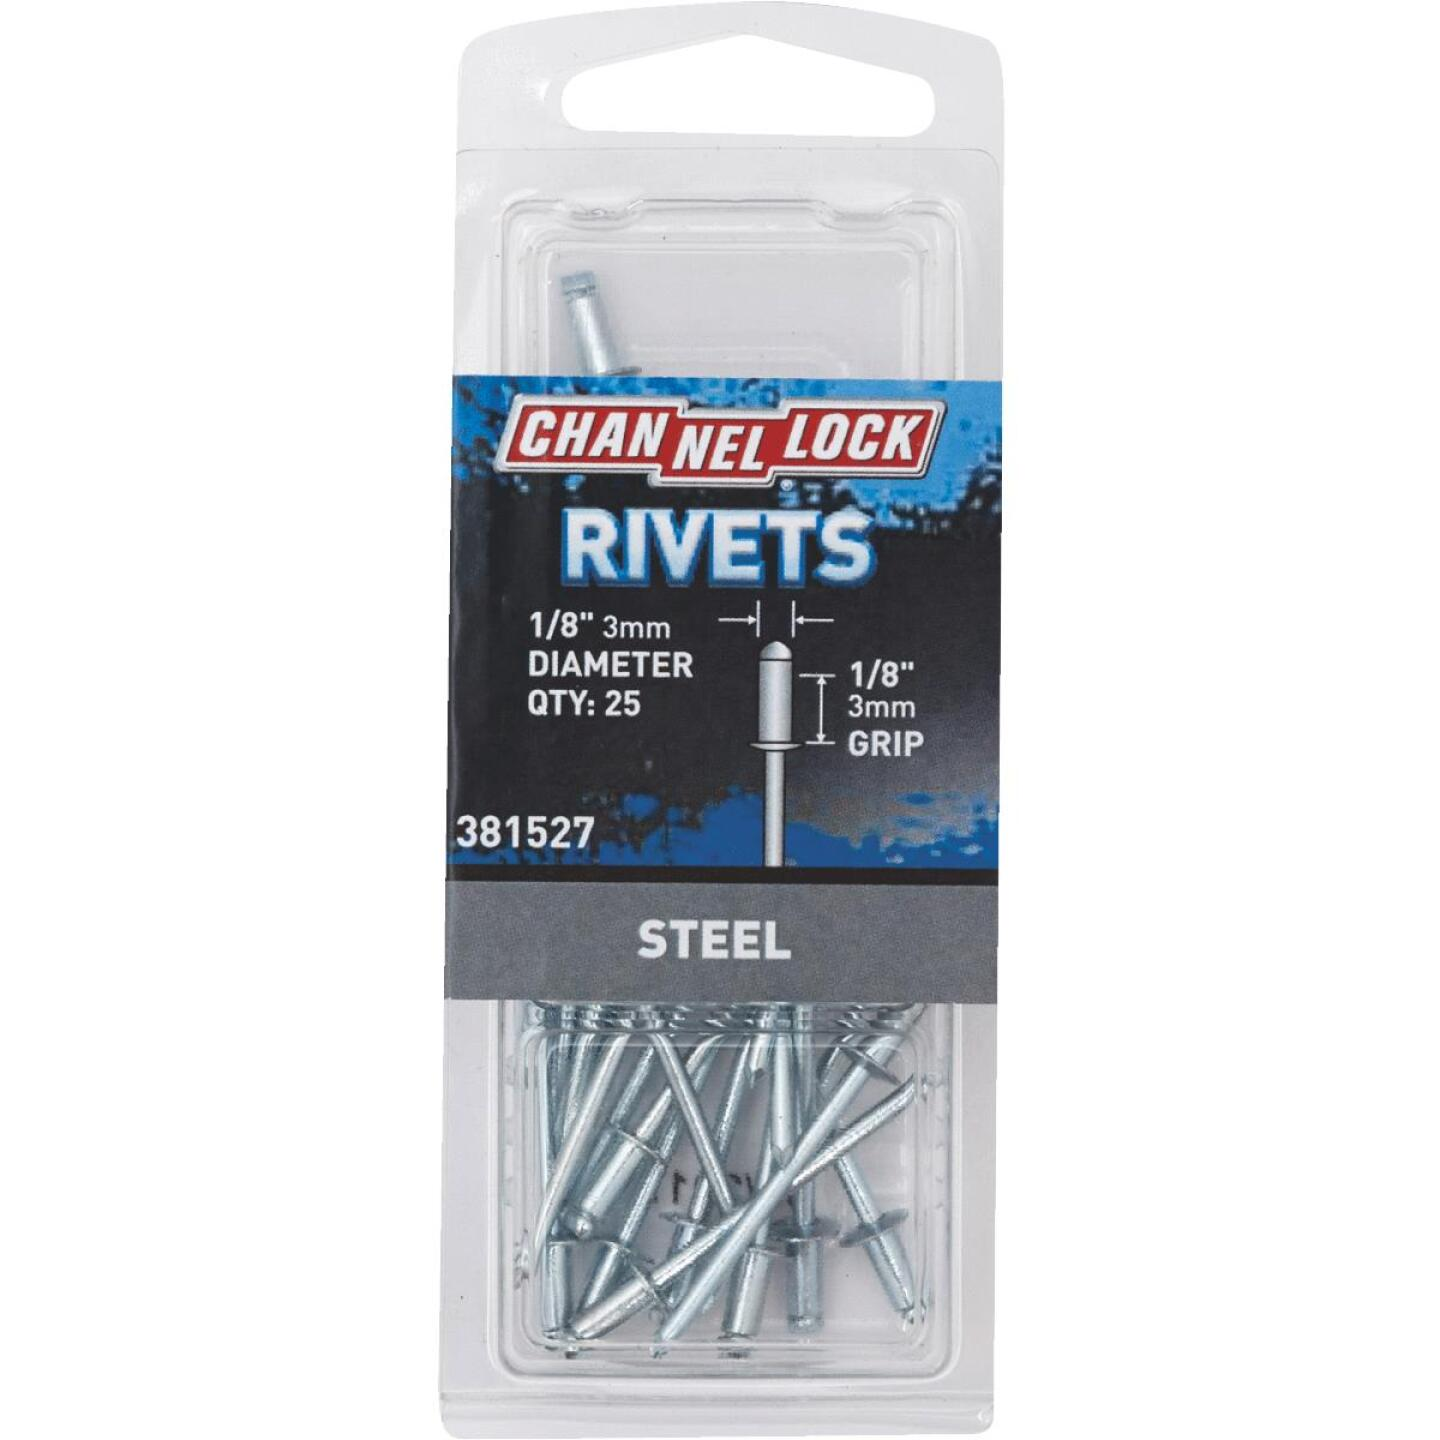 Channellock 1/8 In. Dia. x 1/8 In. Grip Steel POP Rivet (25-Pack) Image 1